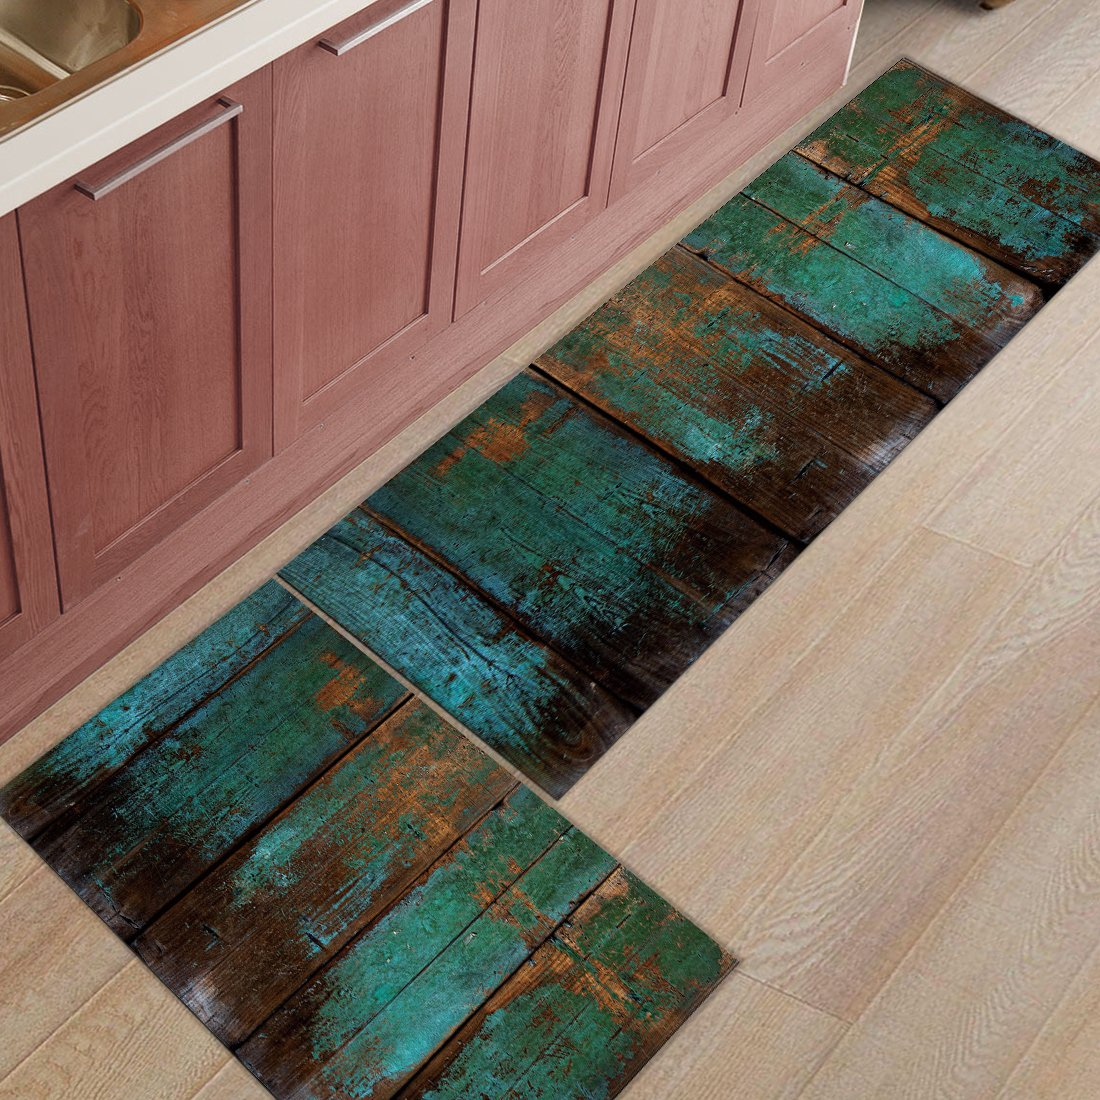 HomeCreator Non Slip 2pc Kitchen Area Rugs Wood Grain Absorbent Antibacterial Indoor Door Mats Set Machine Washable Rug Runner 15.7''x23.6''/15.7''x47.2''